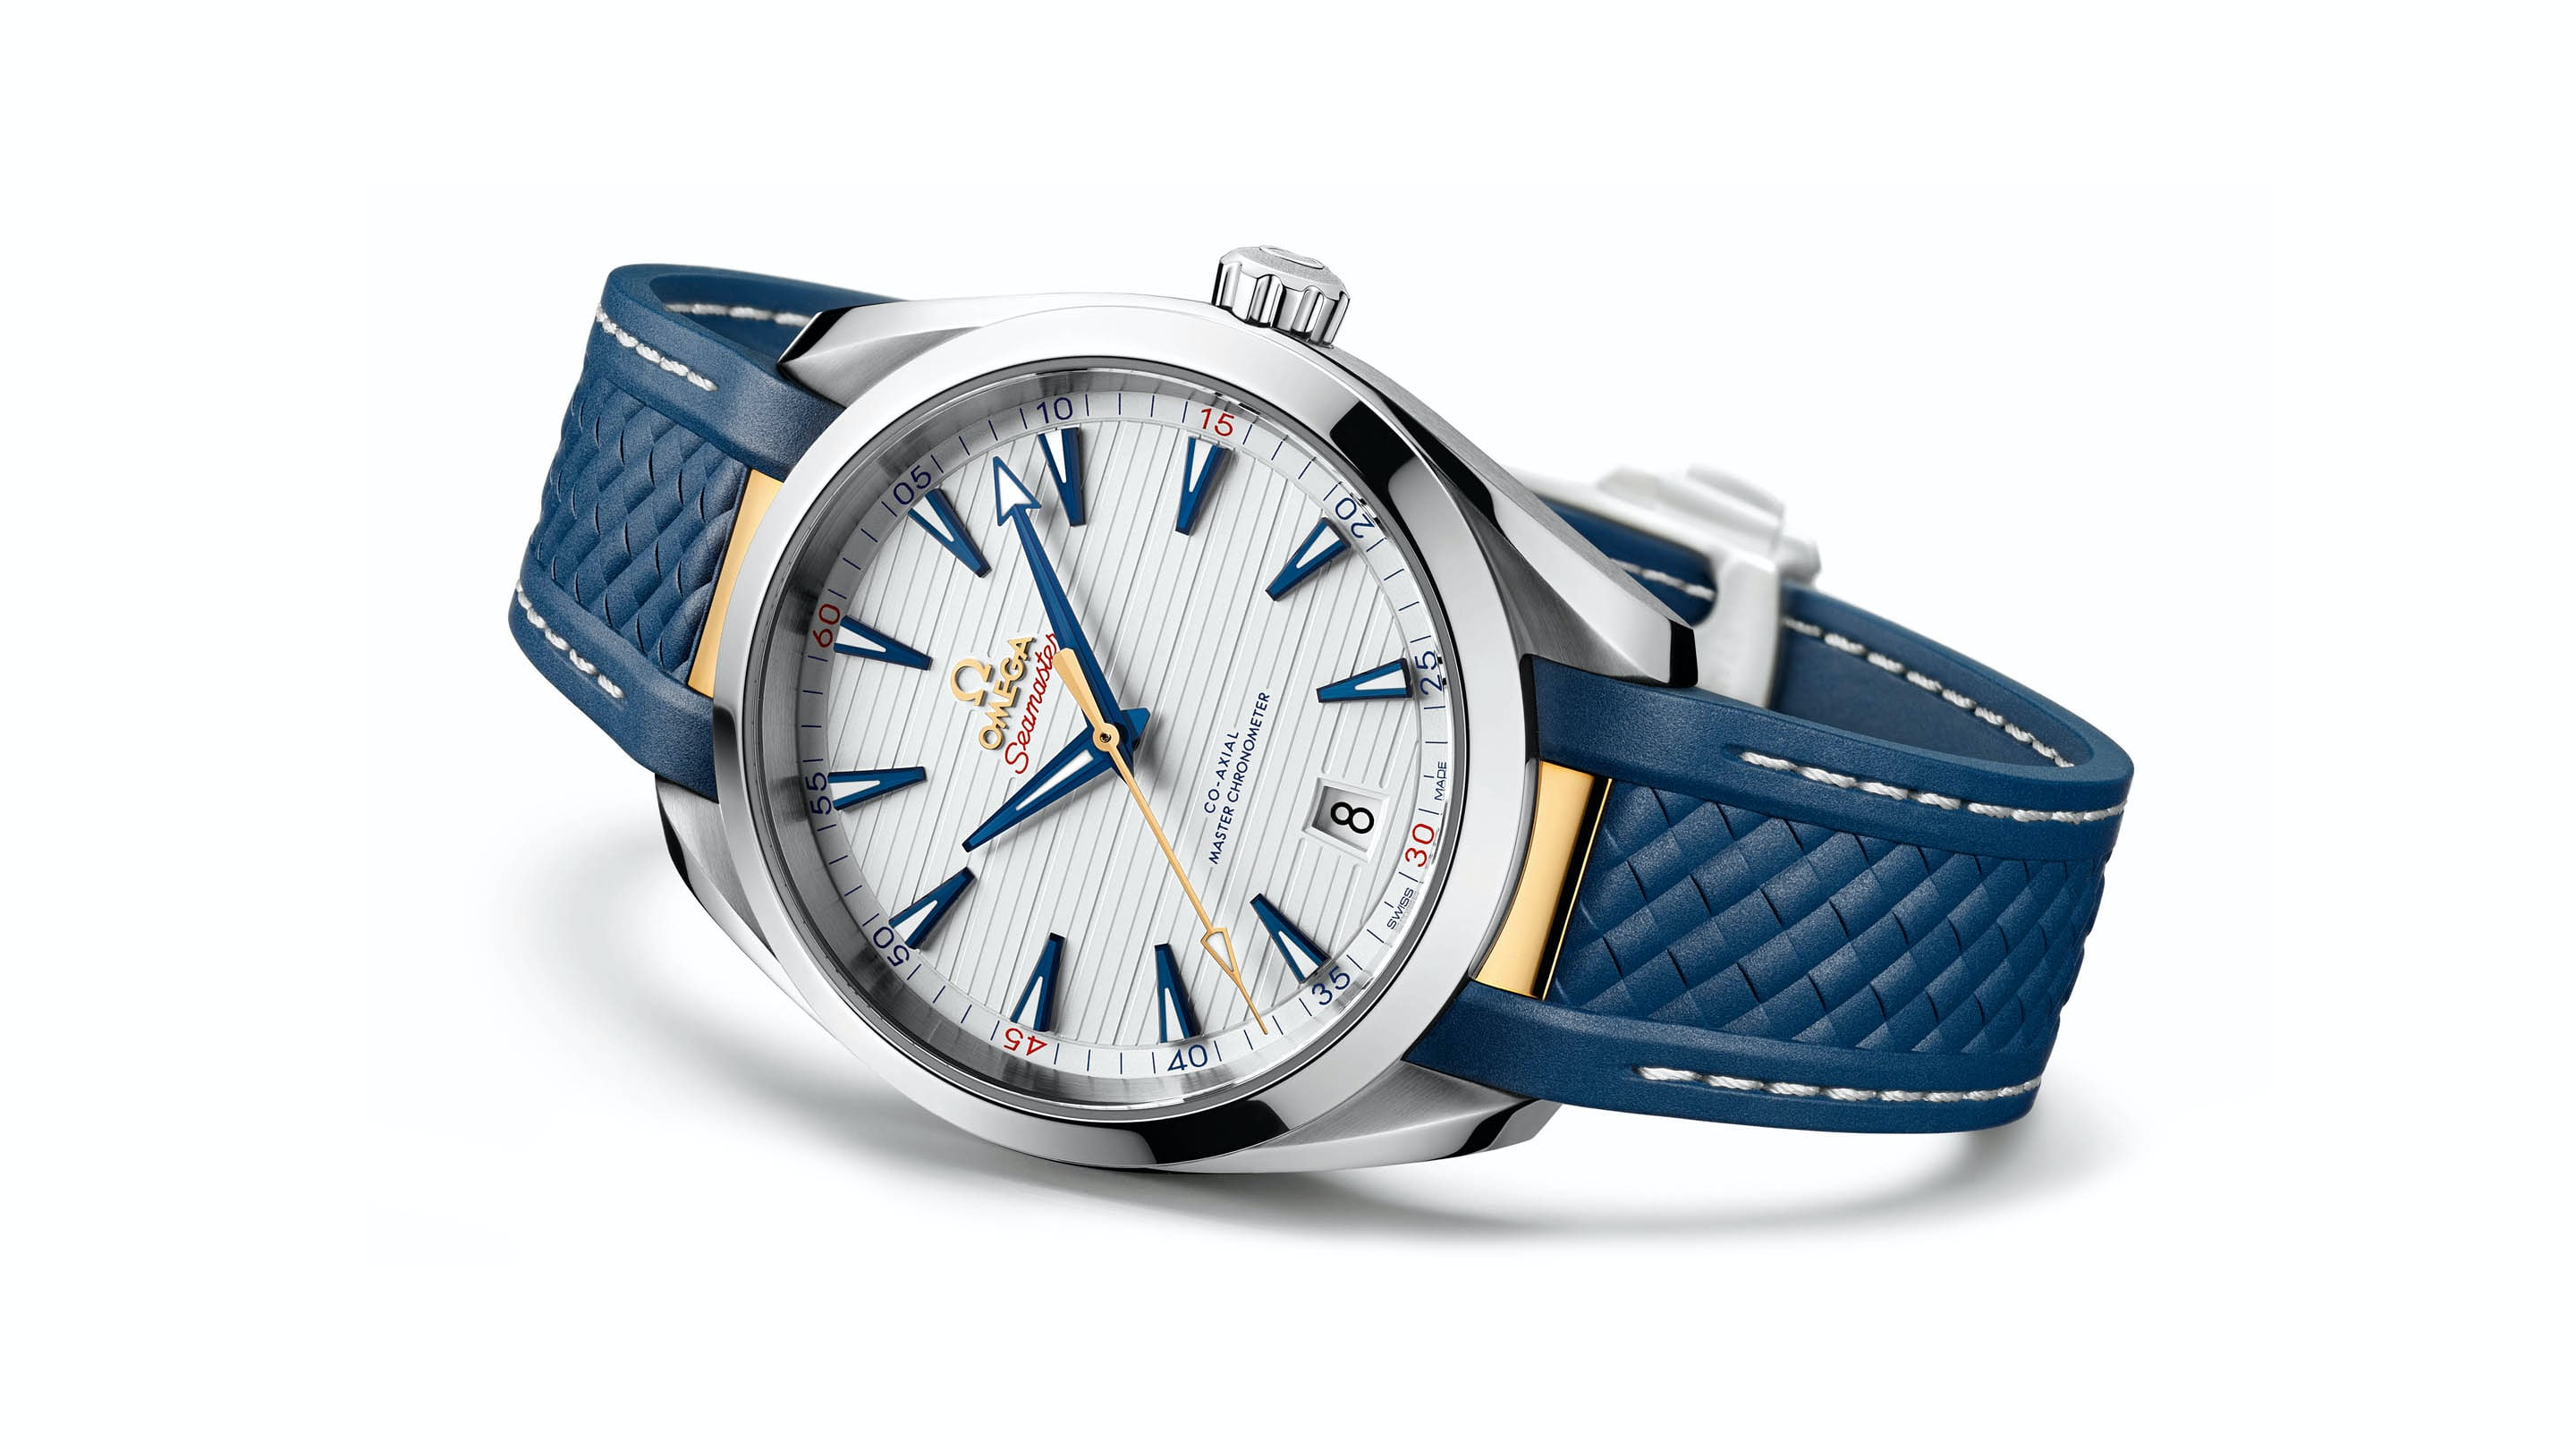 Latest Update Swiss Omega Seamaster Aqua Terra 150M Ryder Cup Special Edition Replica Watch Guide For 2018